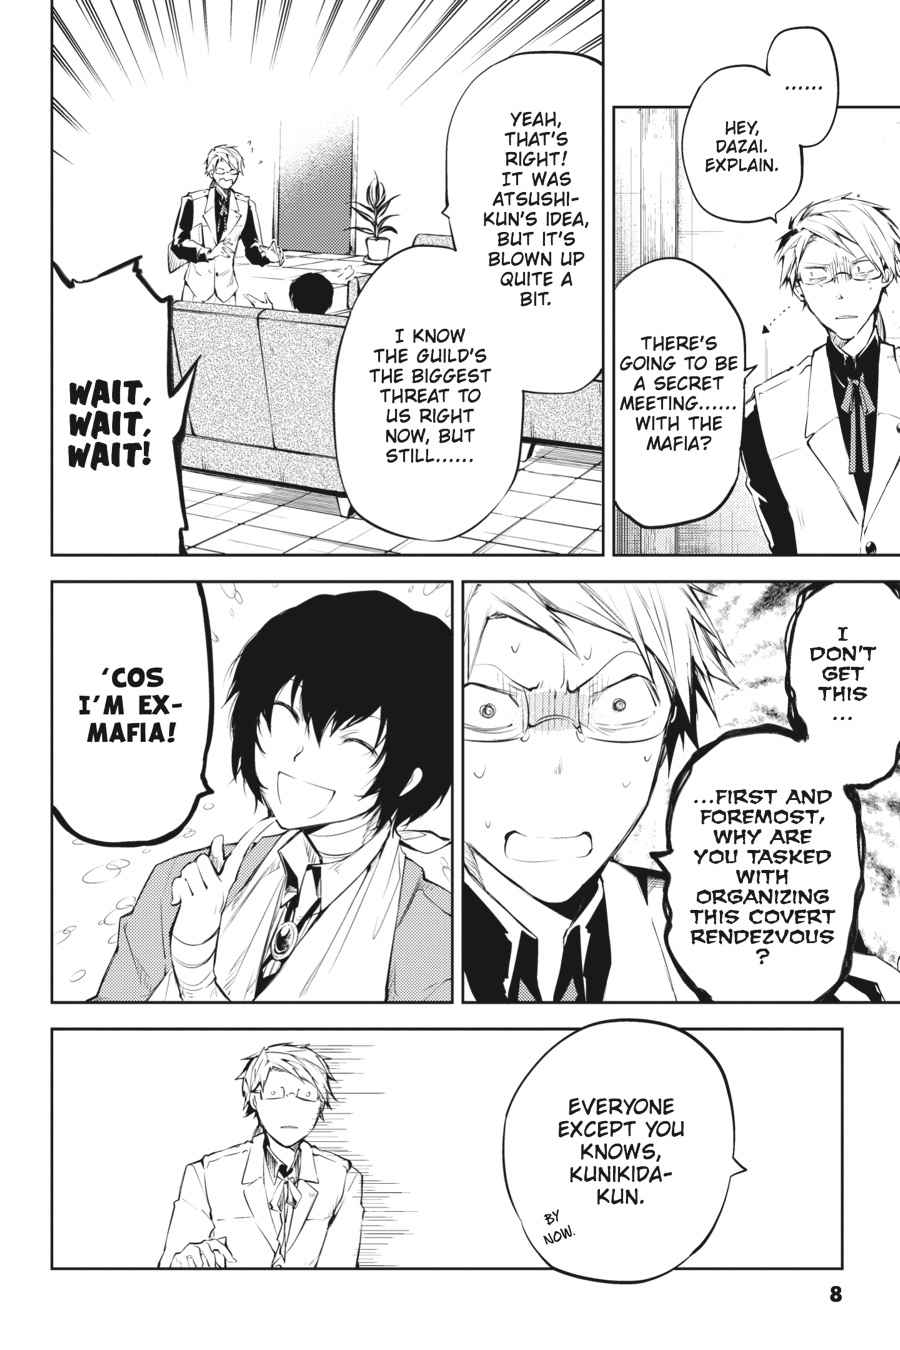 Bungou Stray Dogs Chapter 30 Page 8